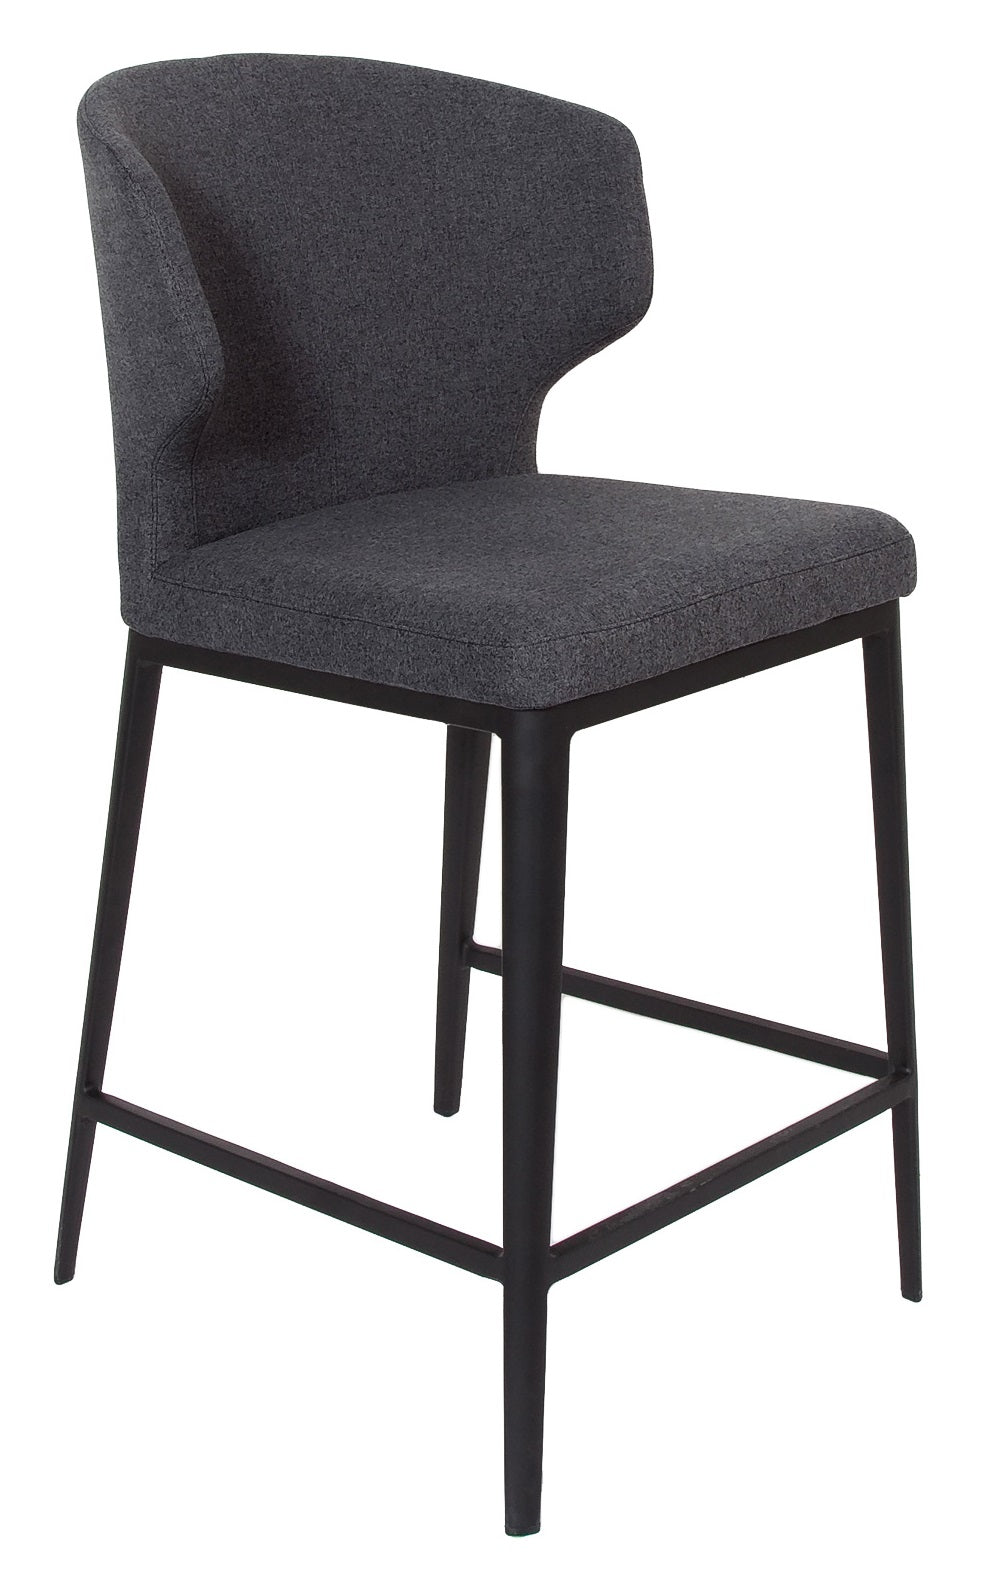 Cabo Fabric Counter Stool - Dark Grey with Metal Base